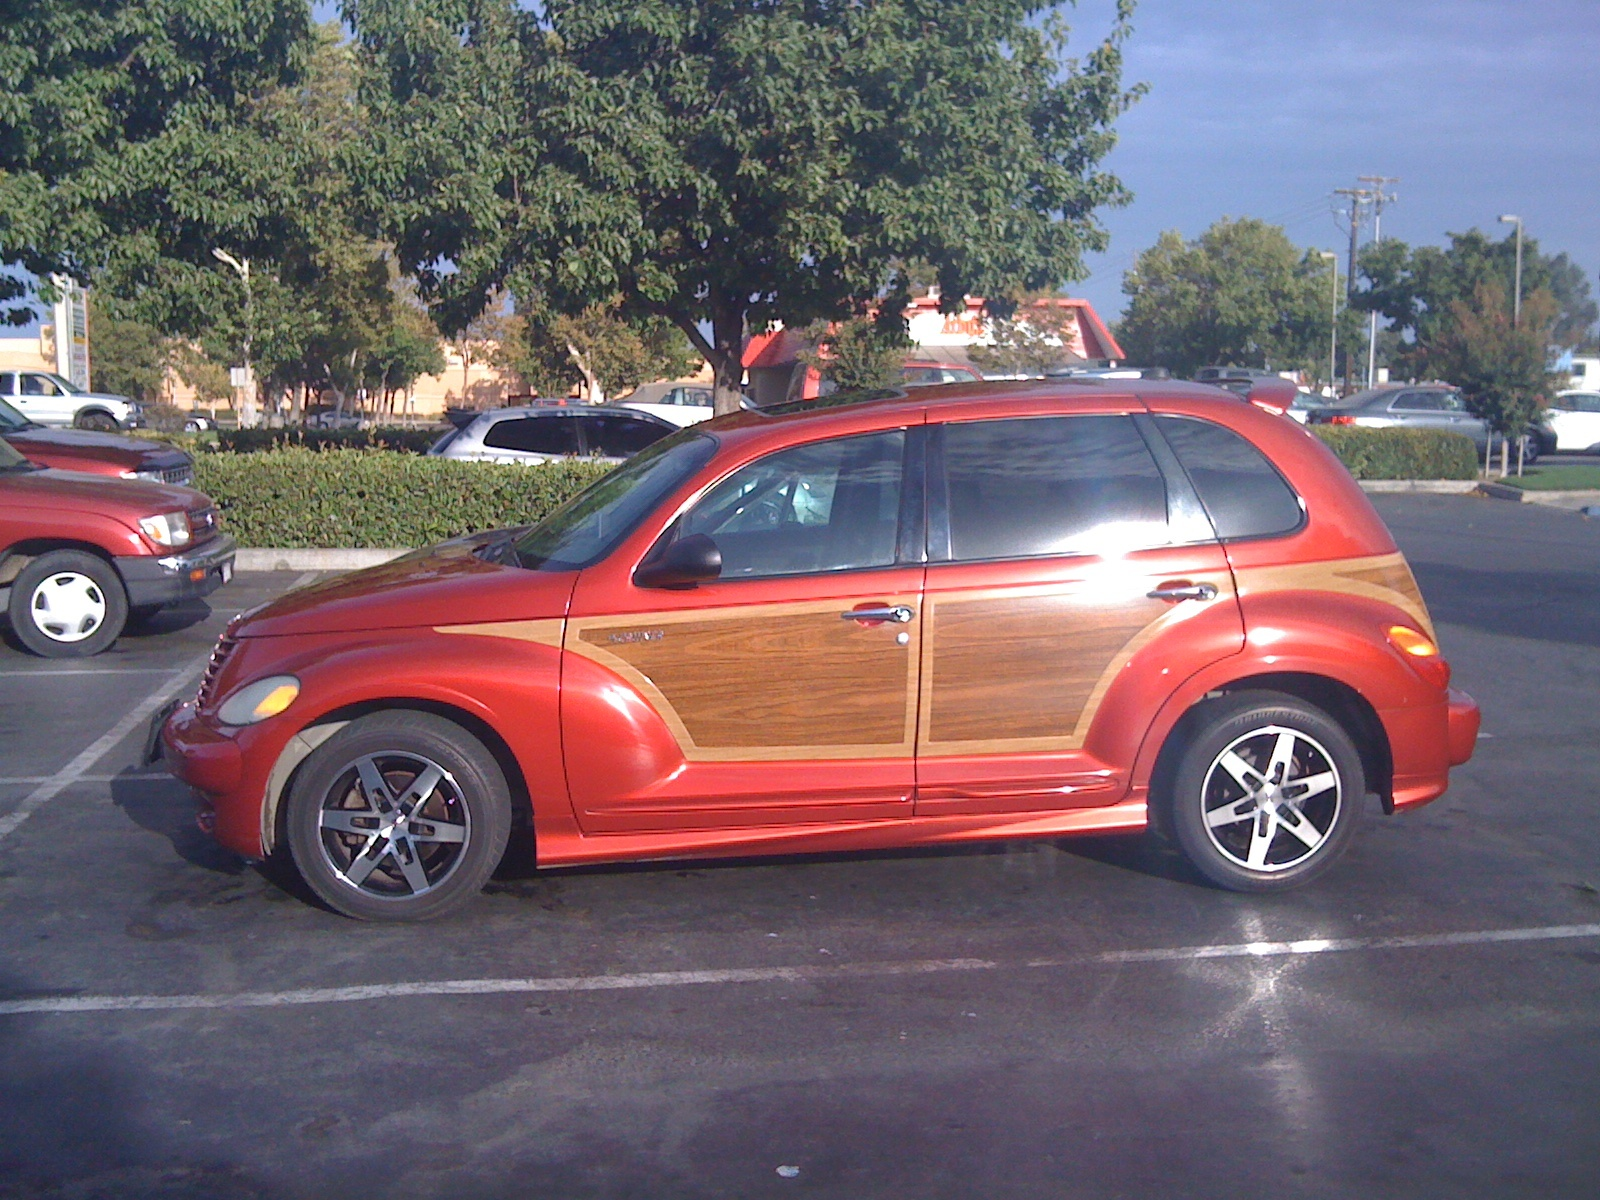 How is the PT Cruiser?